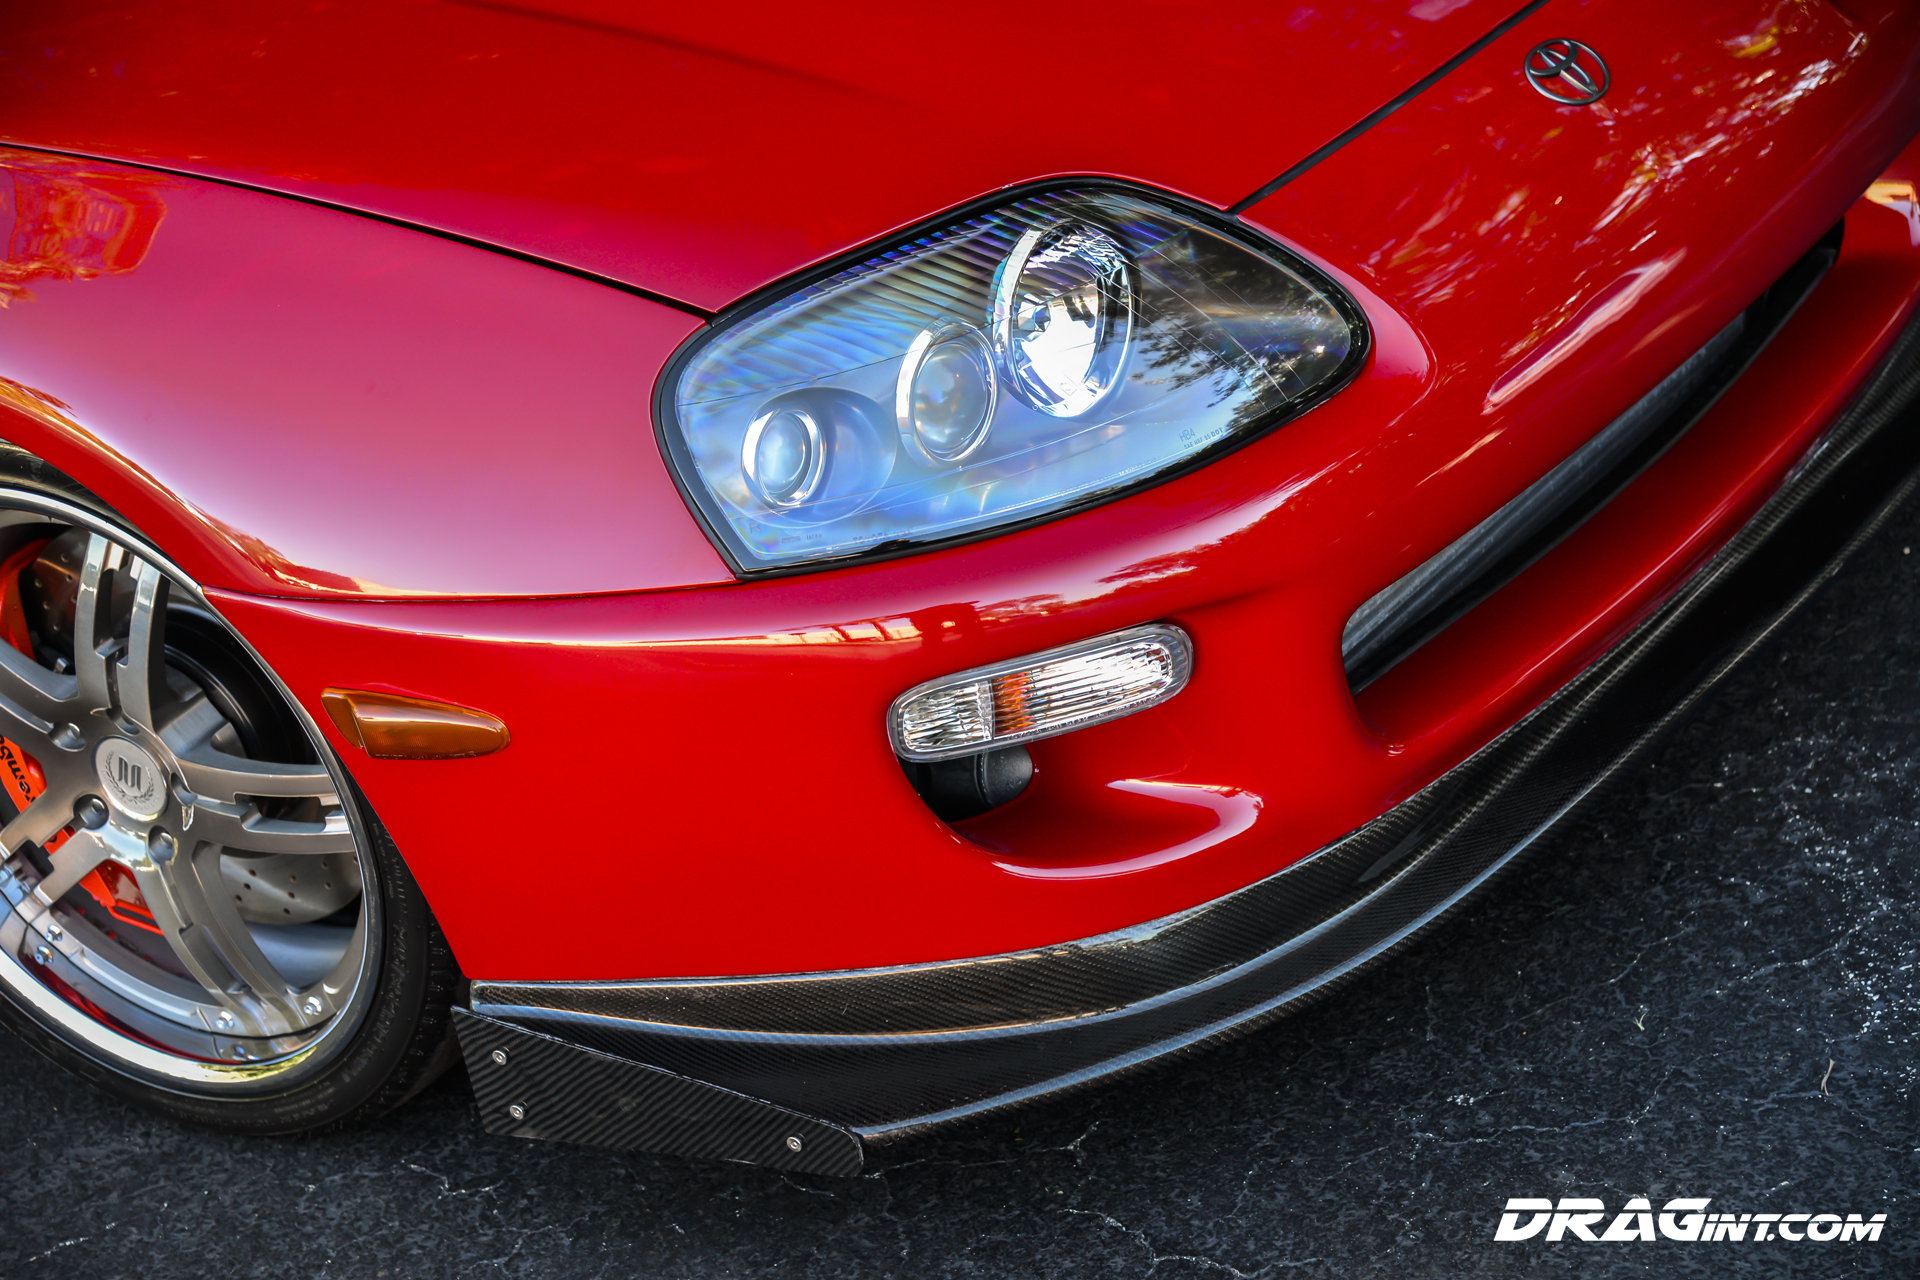 For Sale Dragint 1275hp Street Show Supra Project